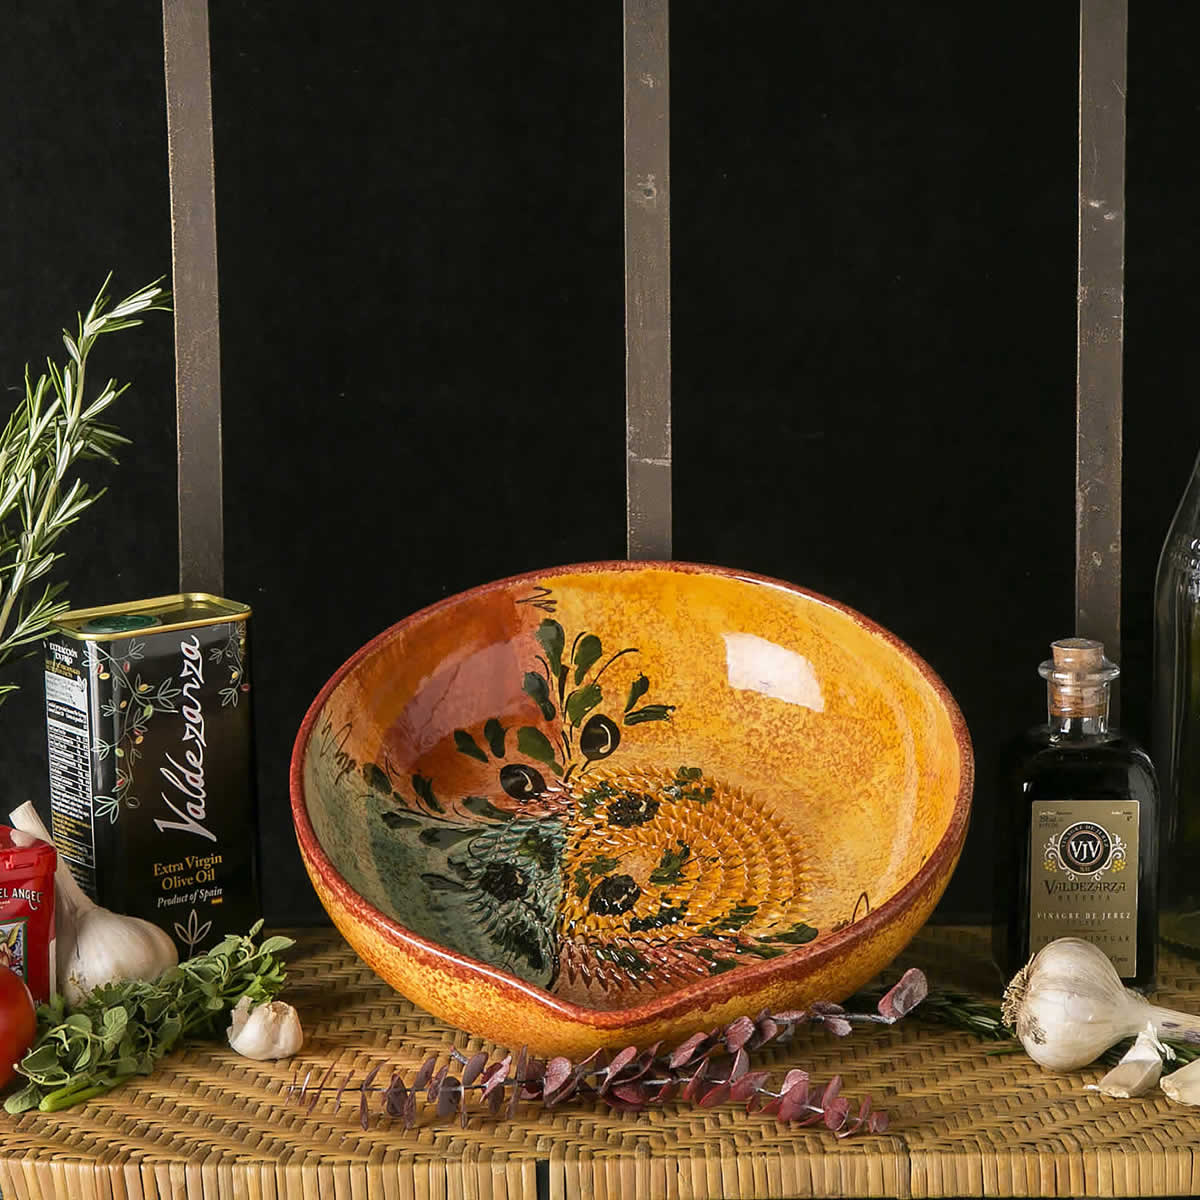 Vintage Olive Grater Bowl & Vintage Olive Grater Bowl   I See Spain - Handcrafted Spanish ...